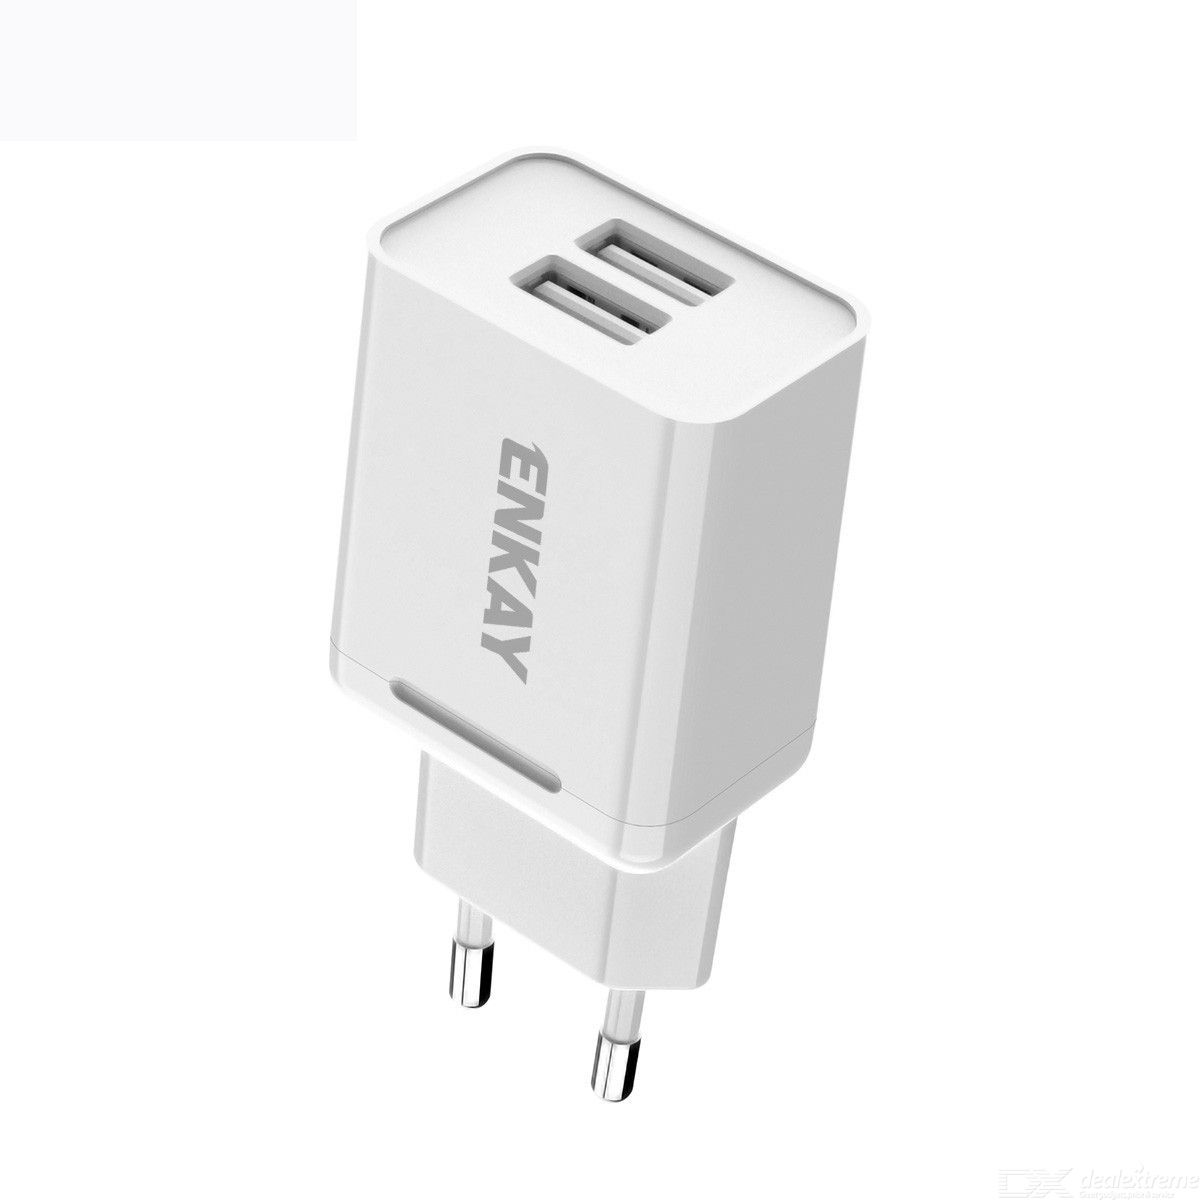 Enkay hat-prince t003-1 10.5w 2.1a dual usb travel charger power adapter for huawei / xiaomi / samsung, eu plug